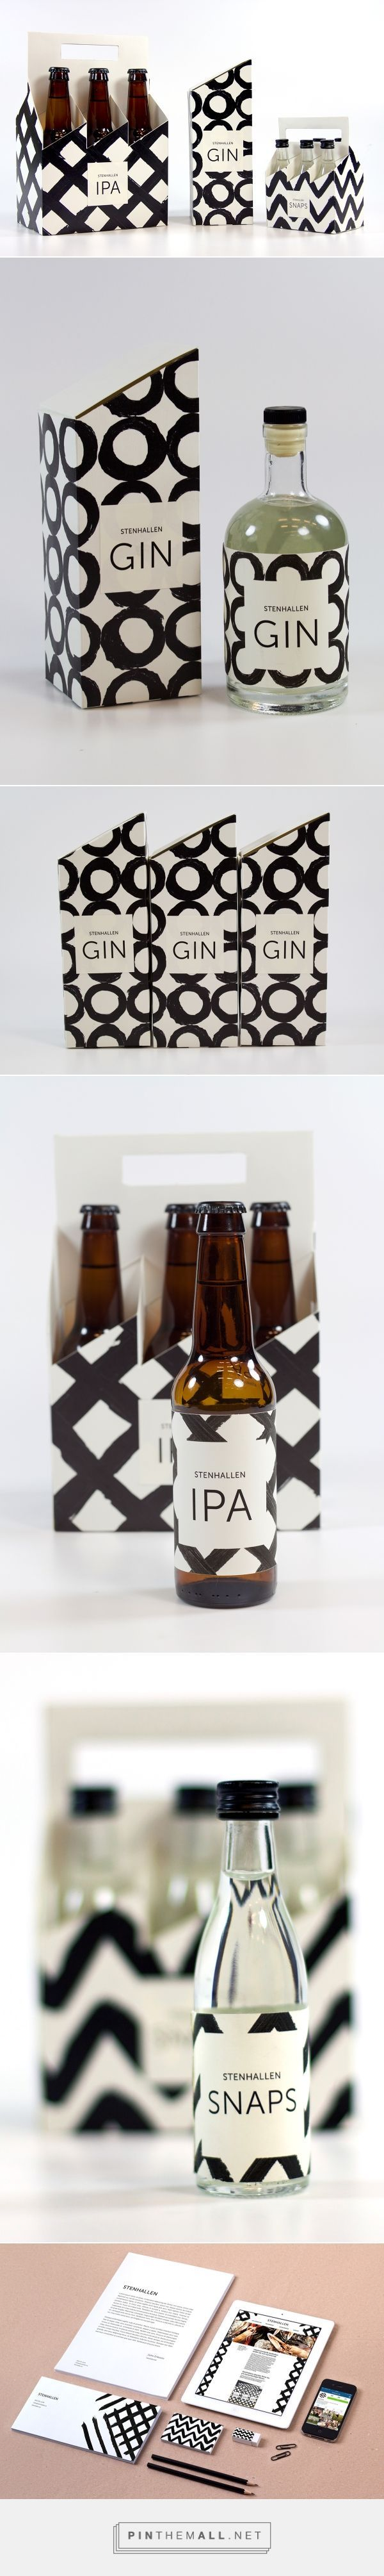 STENHALLEN Branding & Packaging on Behance by Jenny Vesterlund curated by Packaging Diva PD. Examination project in Graphic Design & Communication. The task was to make a cultural project in Sundsvall (a town in North of Sweden)